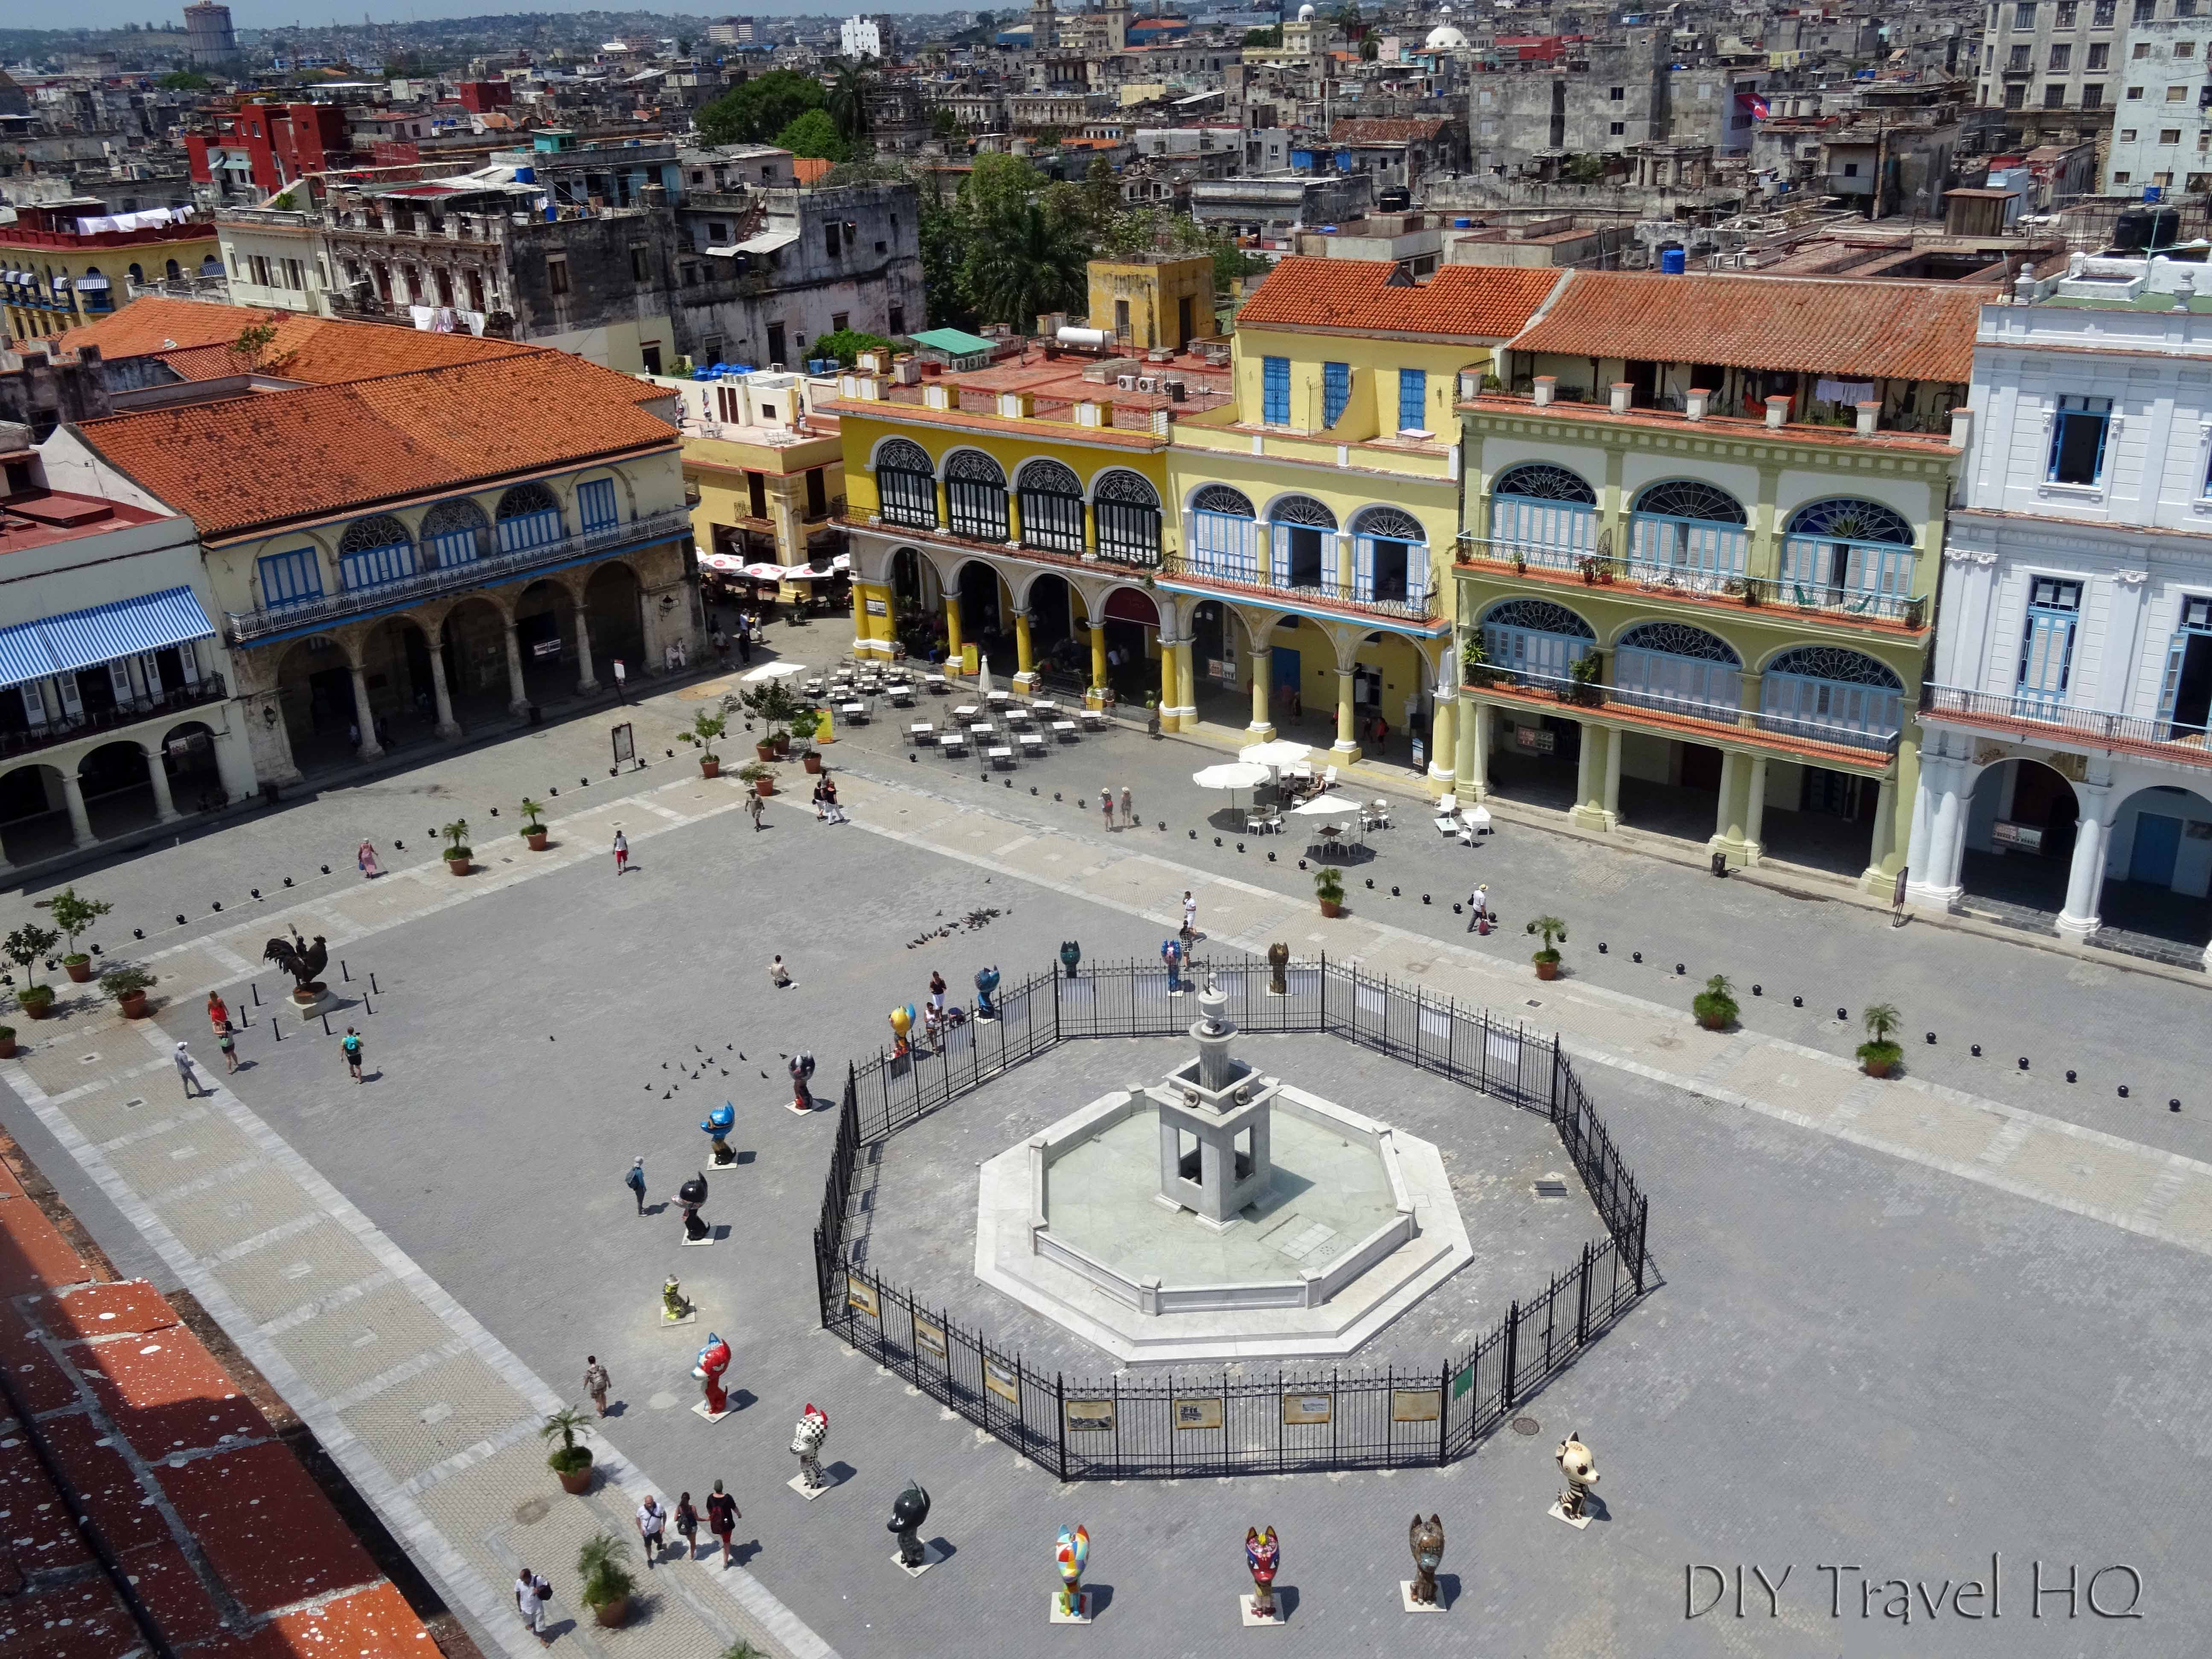 ecuador map south america with Plaza Vieja Best Plaza Old Havana on Satellite Map Of Ecuador as well Quito as well Ecuador furthermore Rancho Estero in addition Digest Participating Countries.